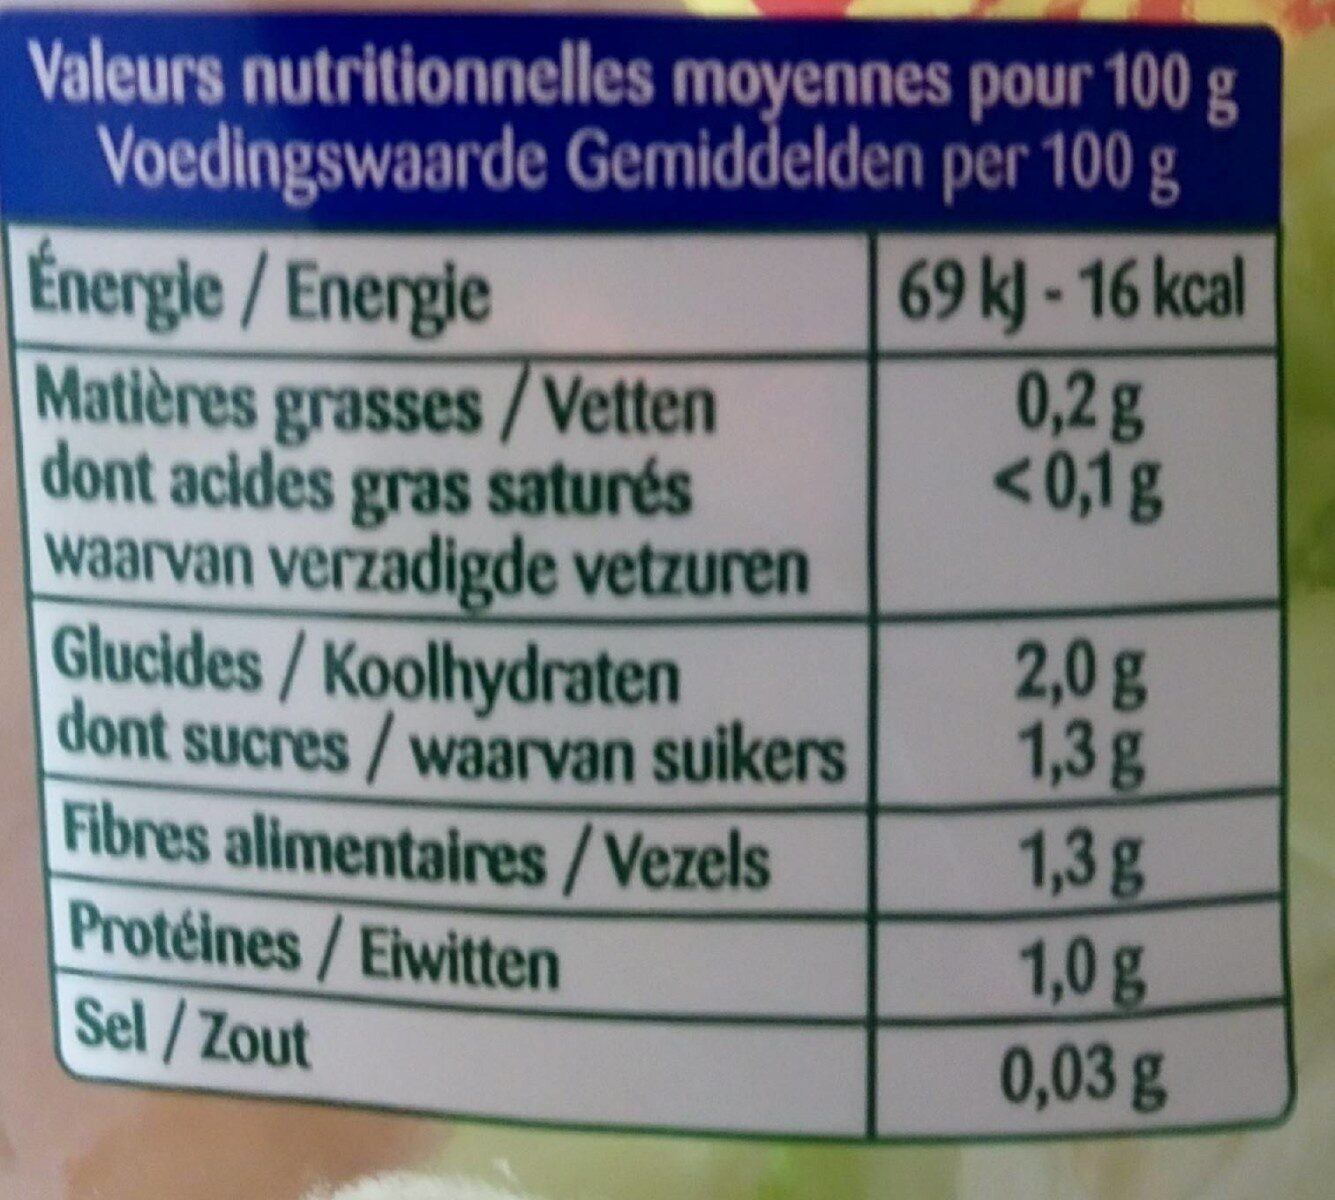 Coeur de laitue - Nutrition facts